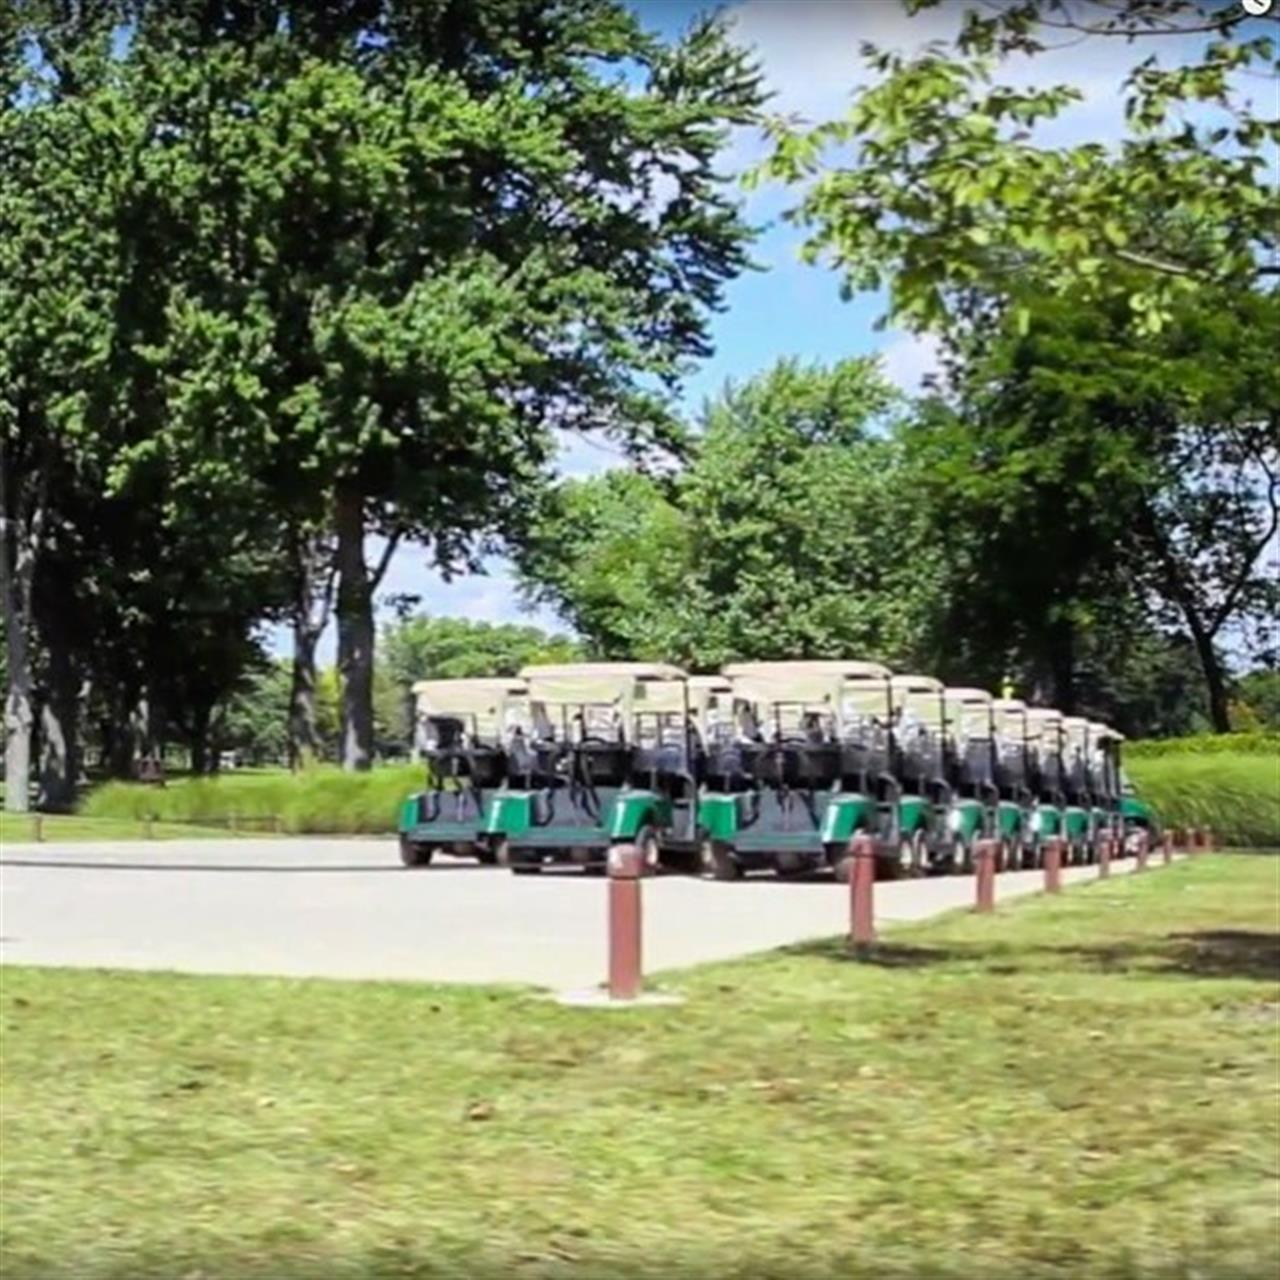 Rows of carts all ready to go. #highlandpark #leadingrelocal #chicago #realestate #golf #tbt